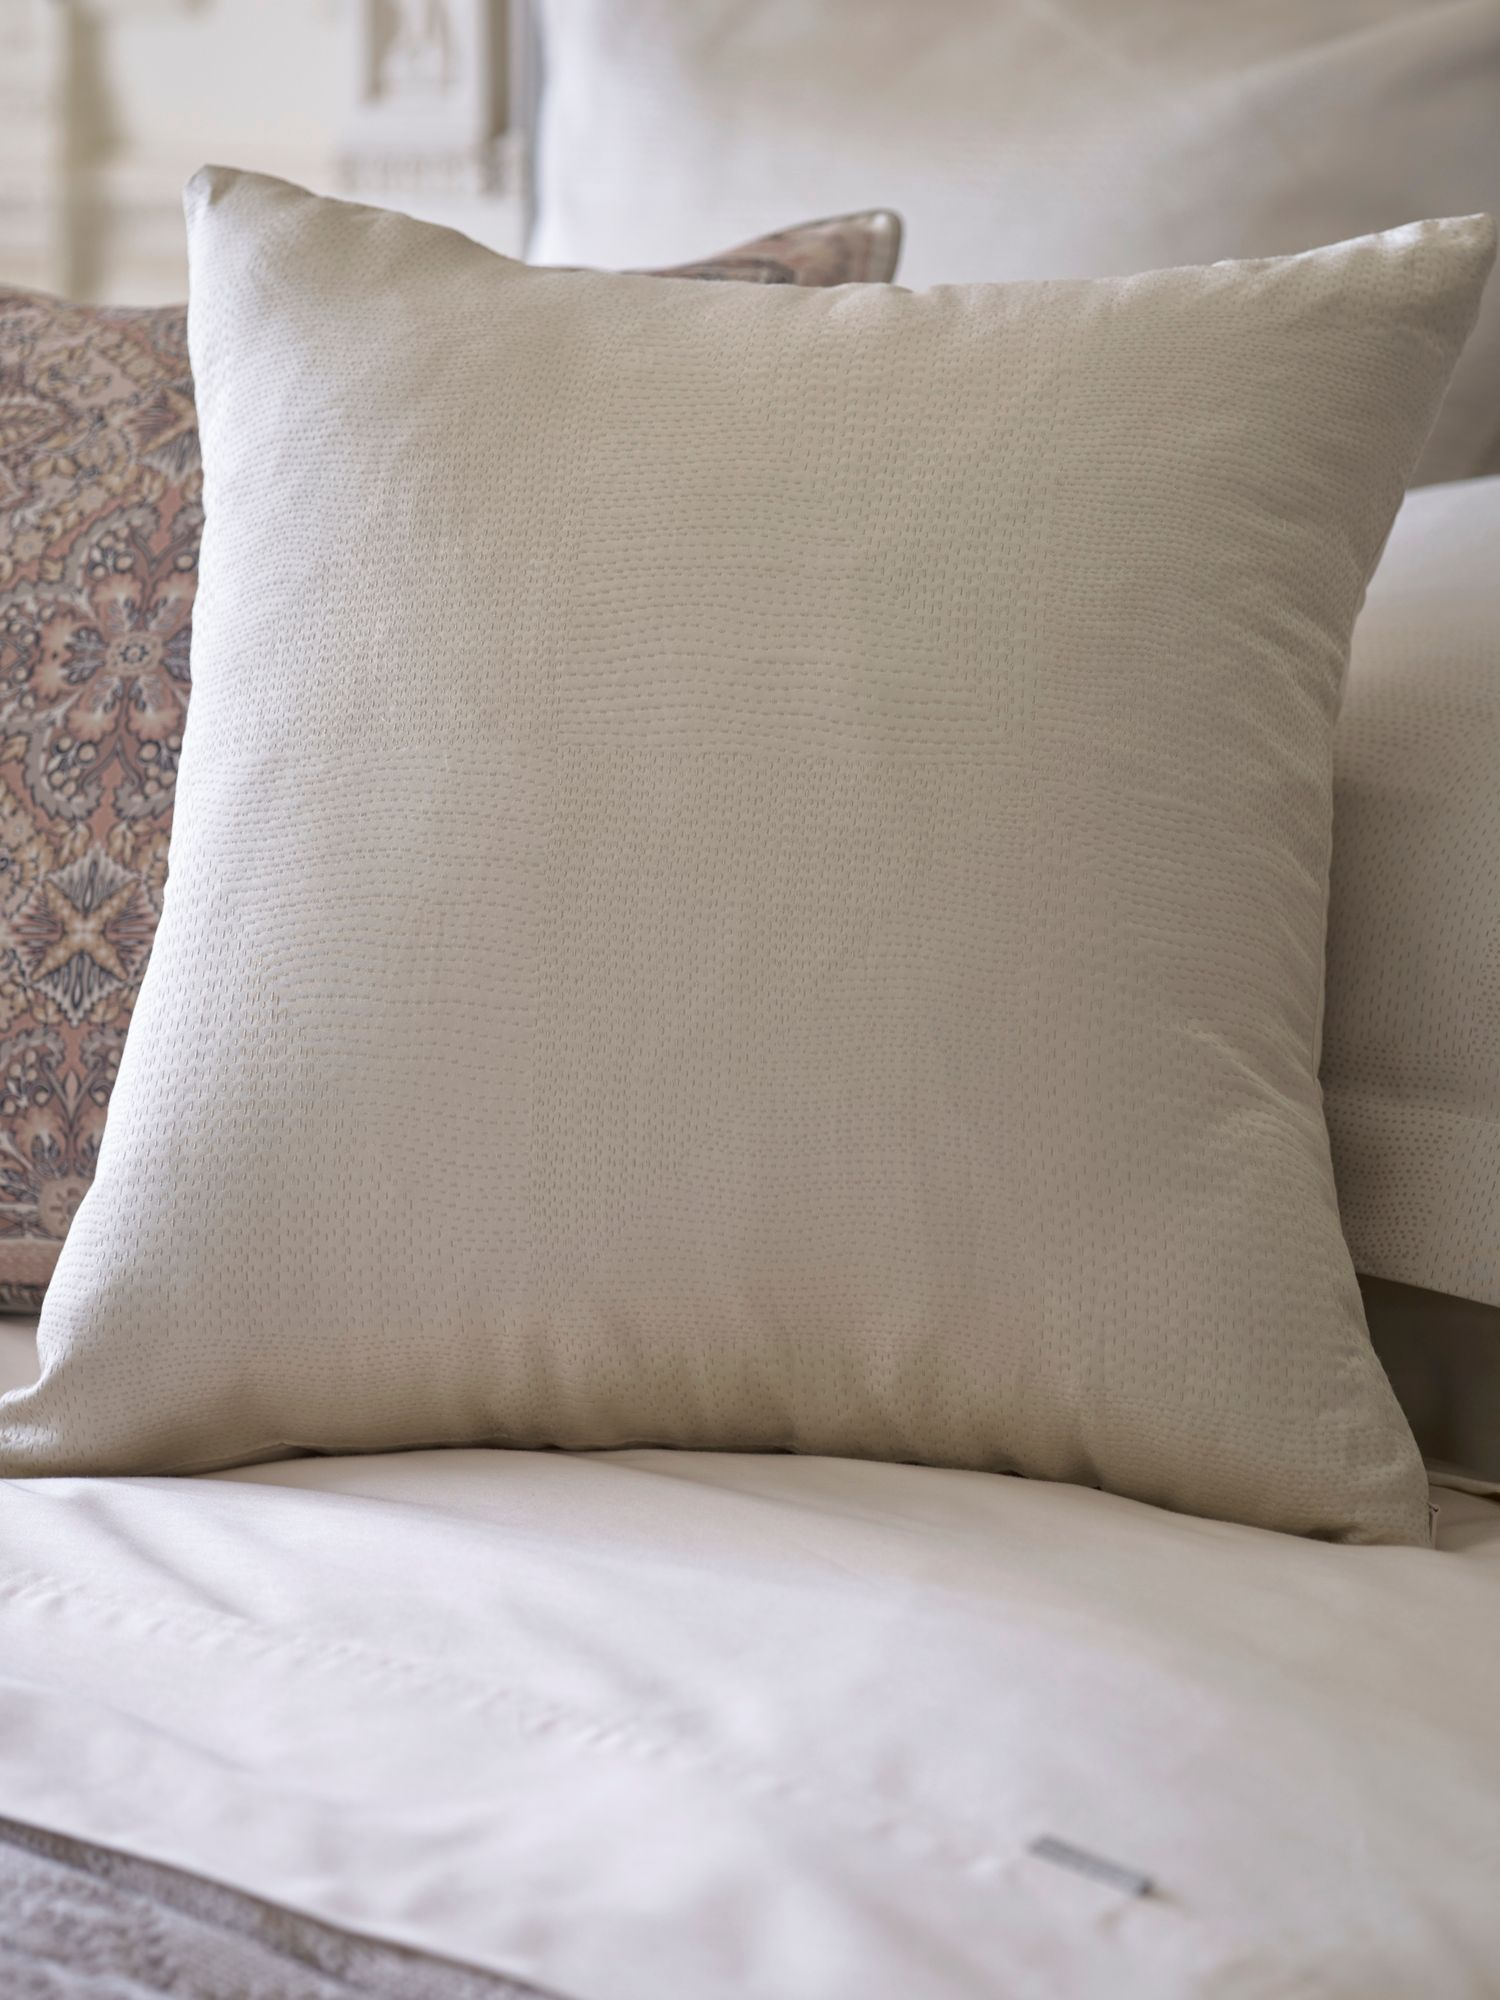 Ligon pebble cushion, intricately detailed jacqua